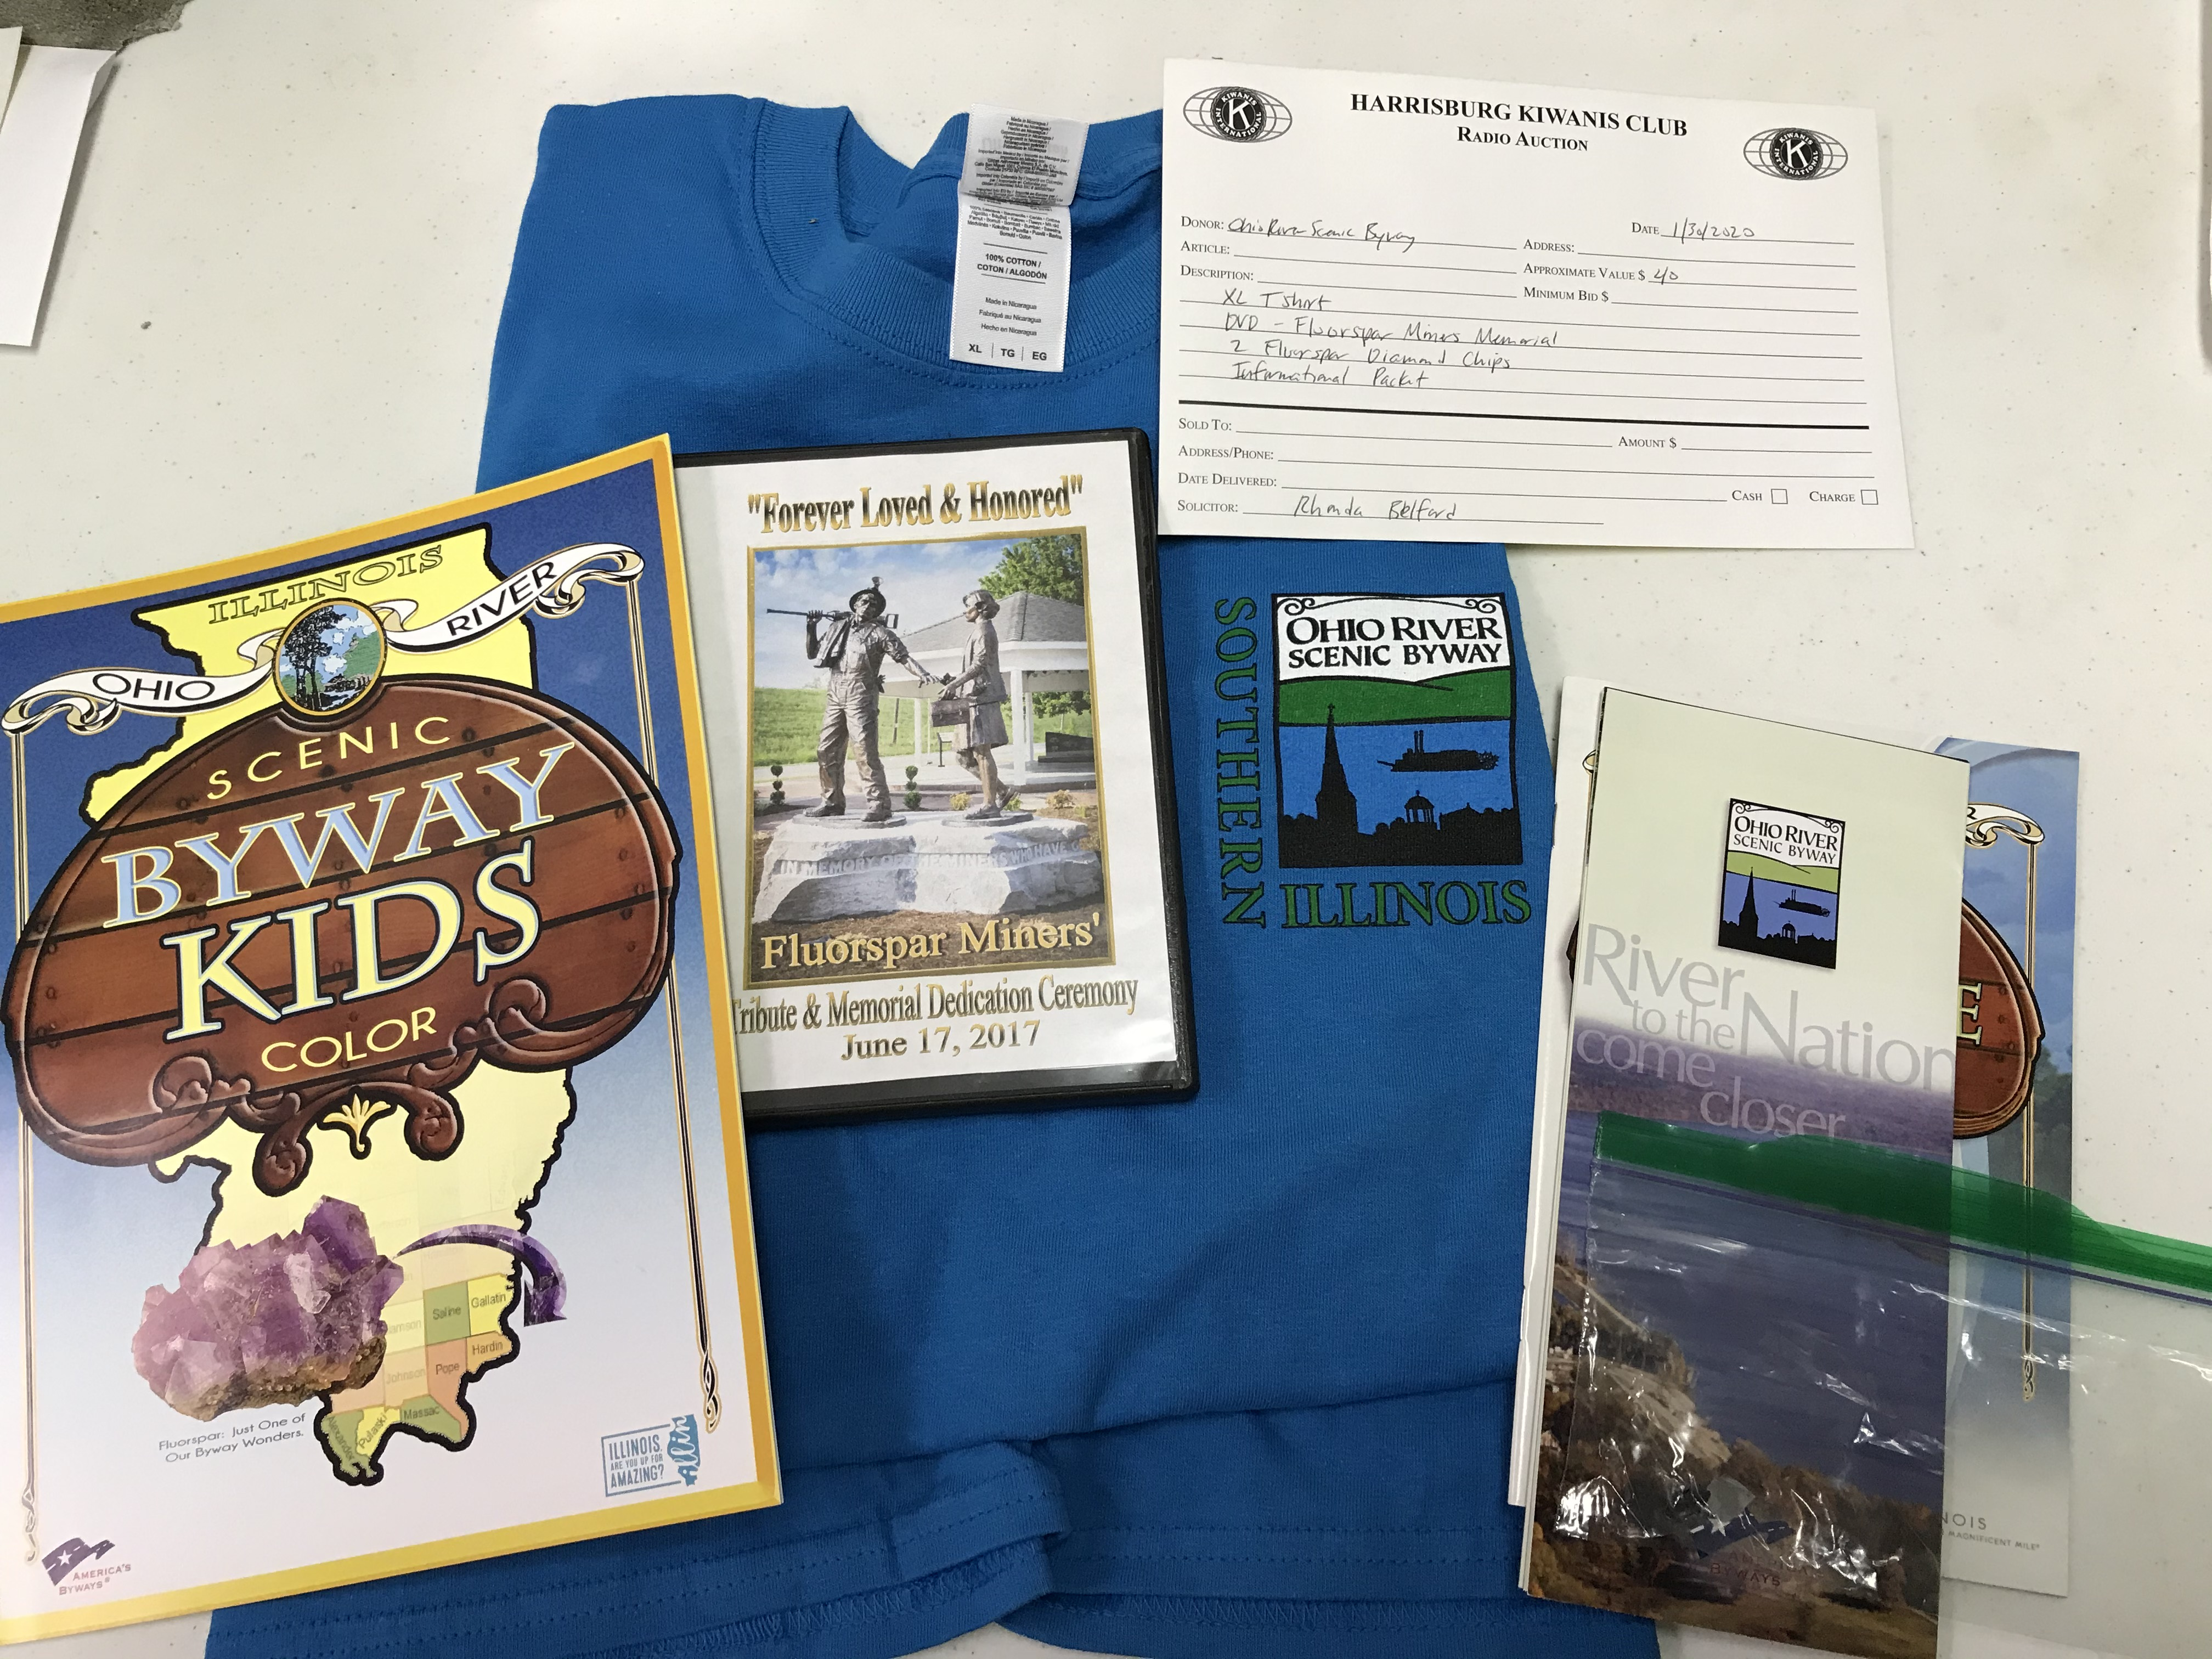 Item 226 - Ohio River Scenic Byway DVD, XL T-Shirt, Fluorspar Diamond Chips, Informational Packet